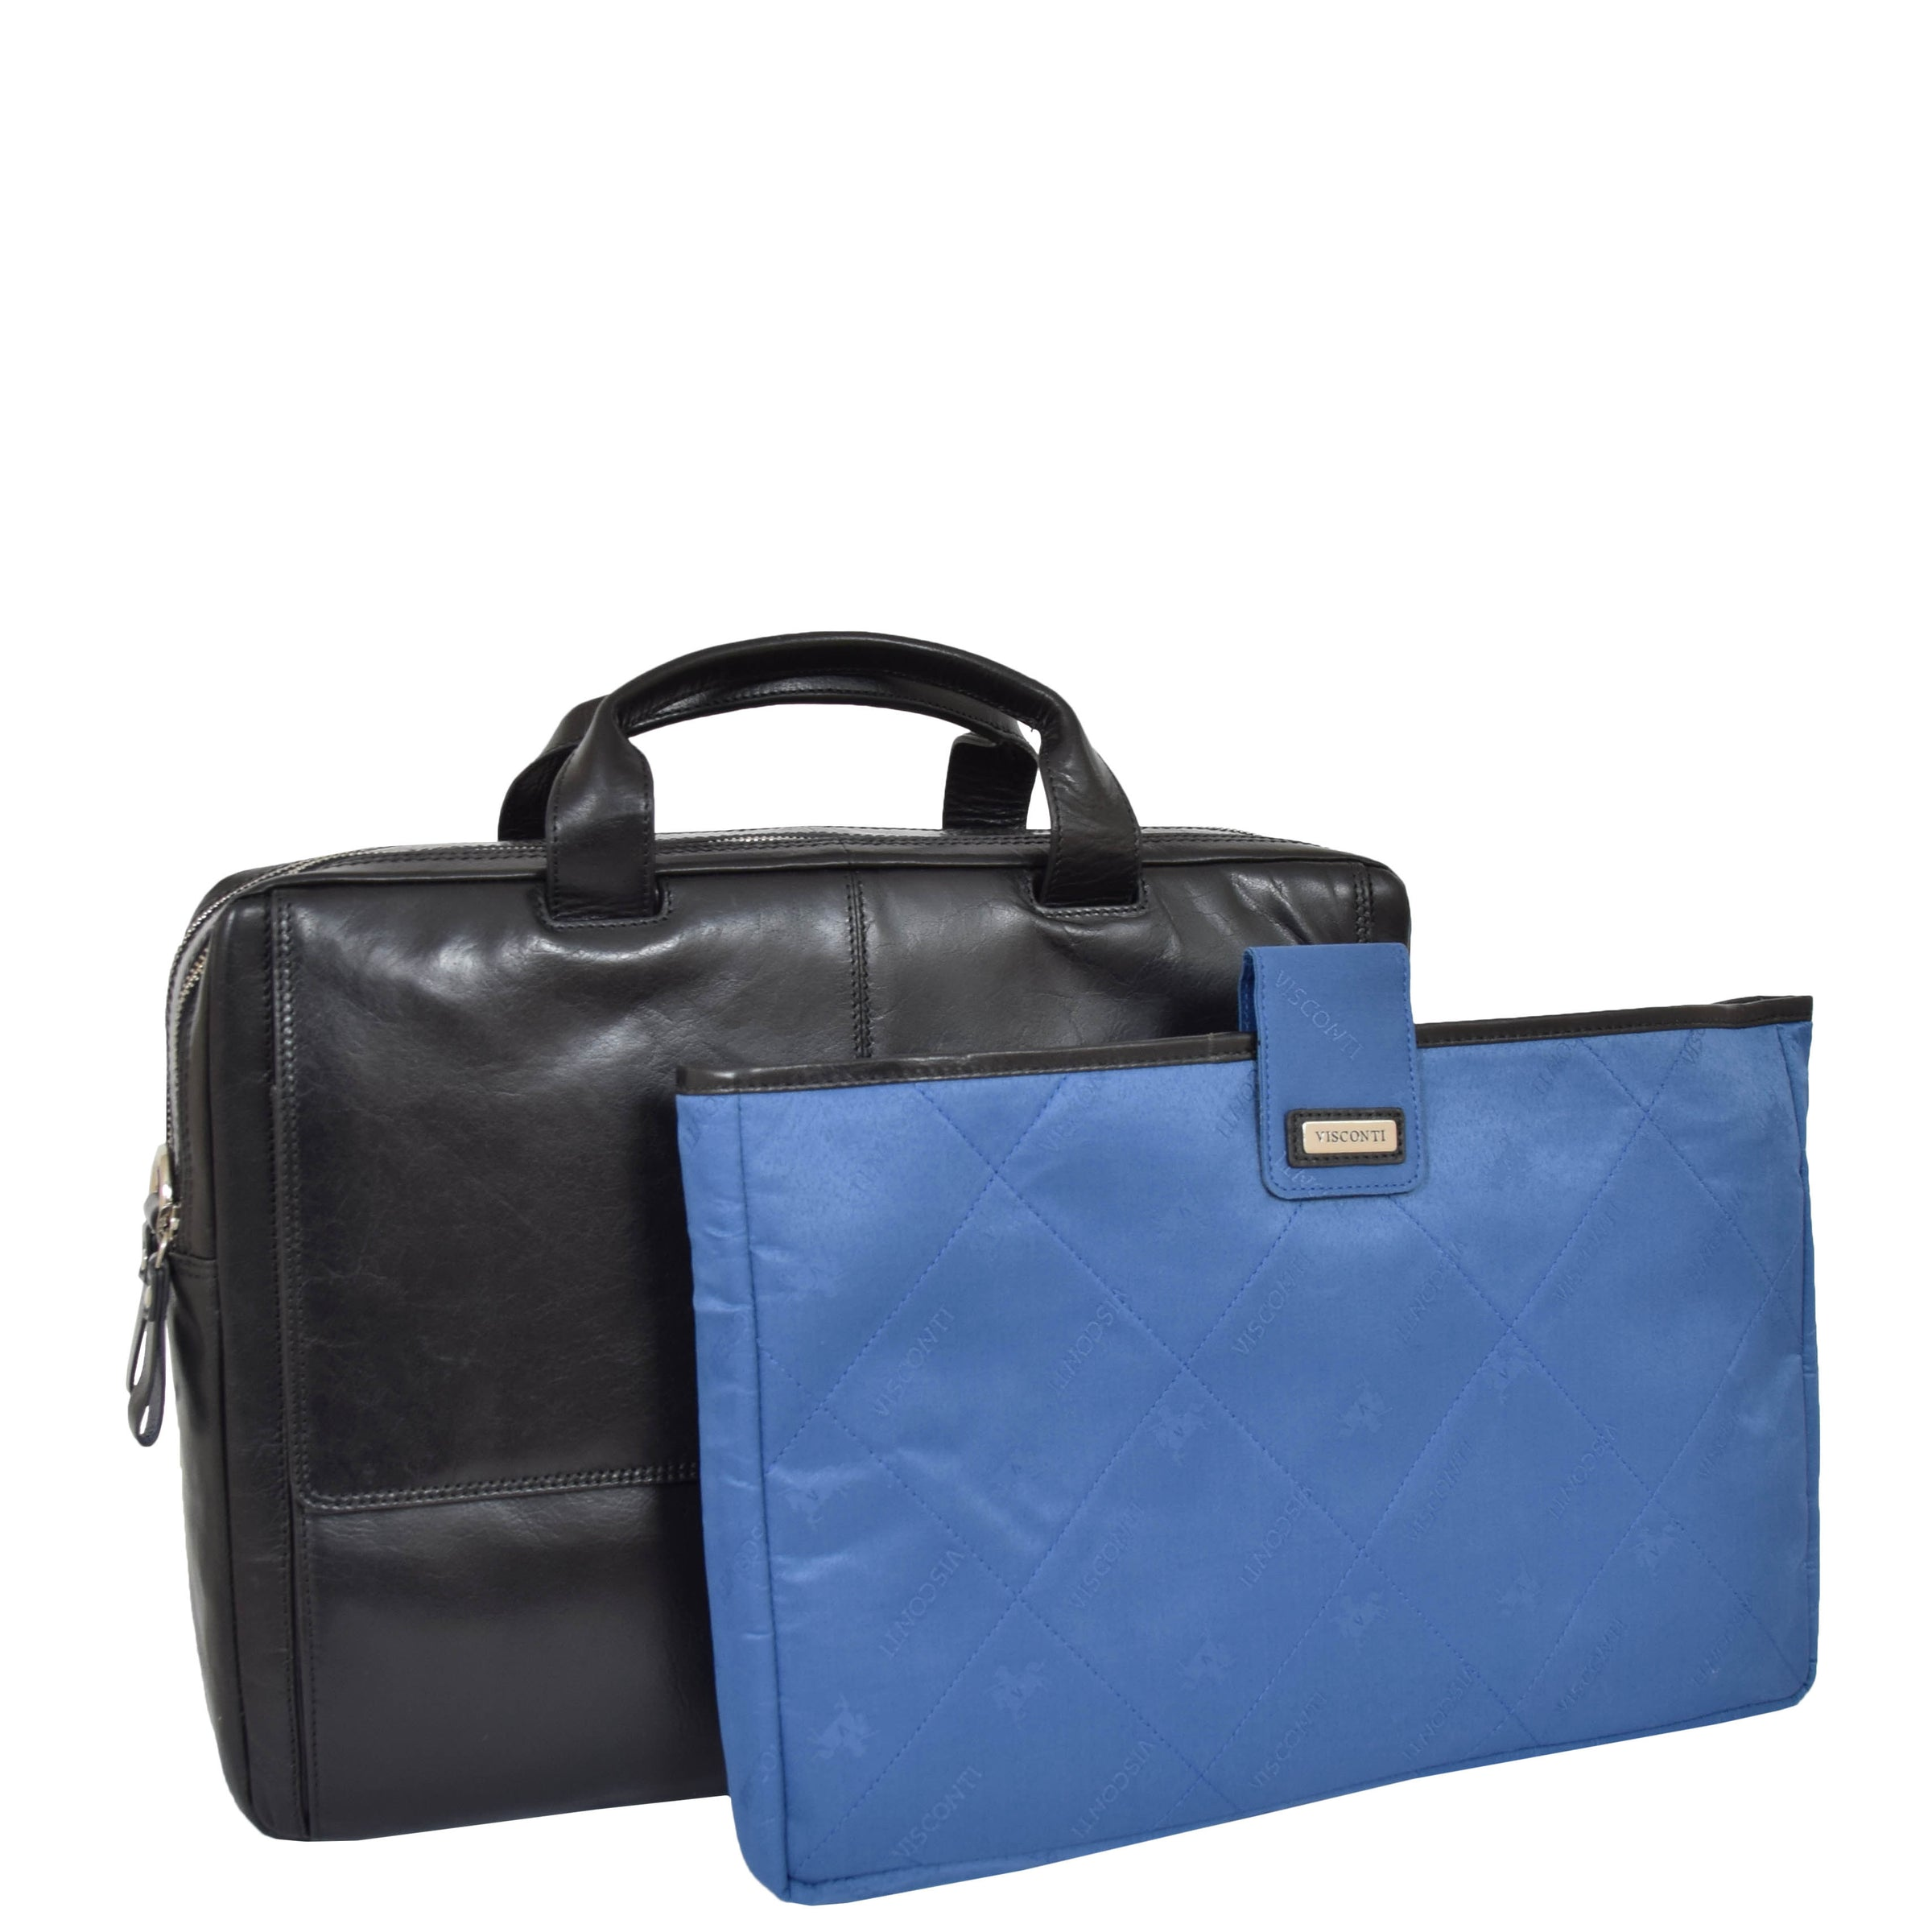 358cc424fc69 Mens Leather Briefcase with Laptop Sleeve Bennett Black